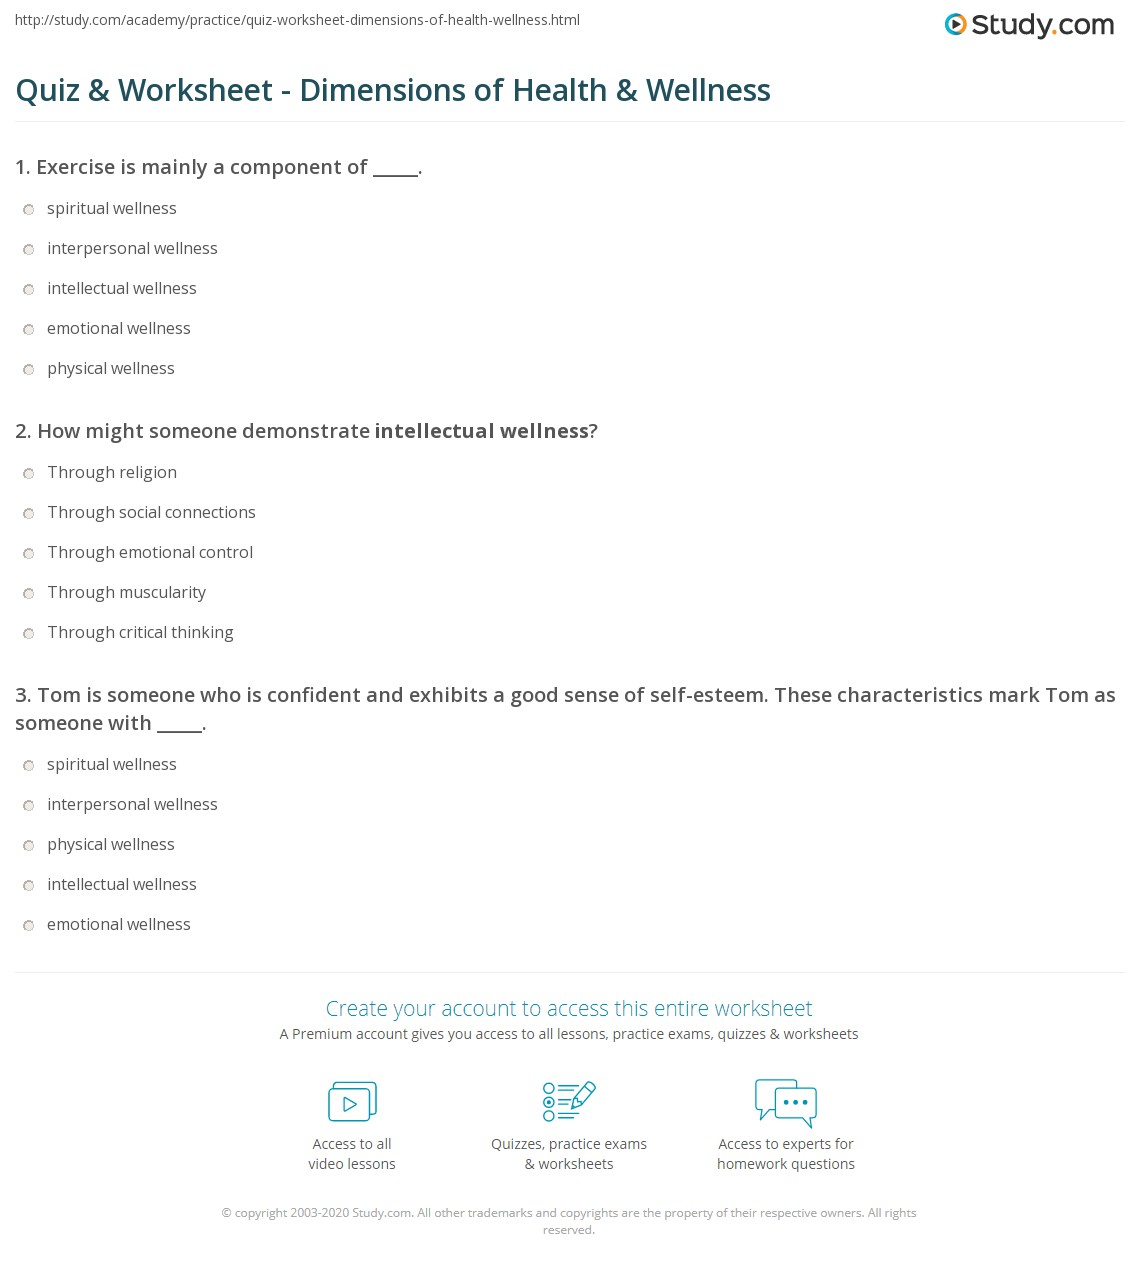 Quiz & Worksheet - Dimensions of Health & Wellness | Study.com